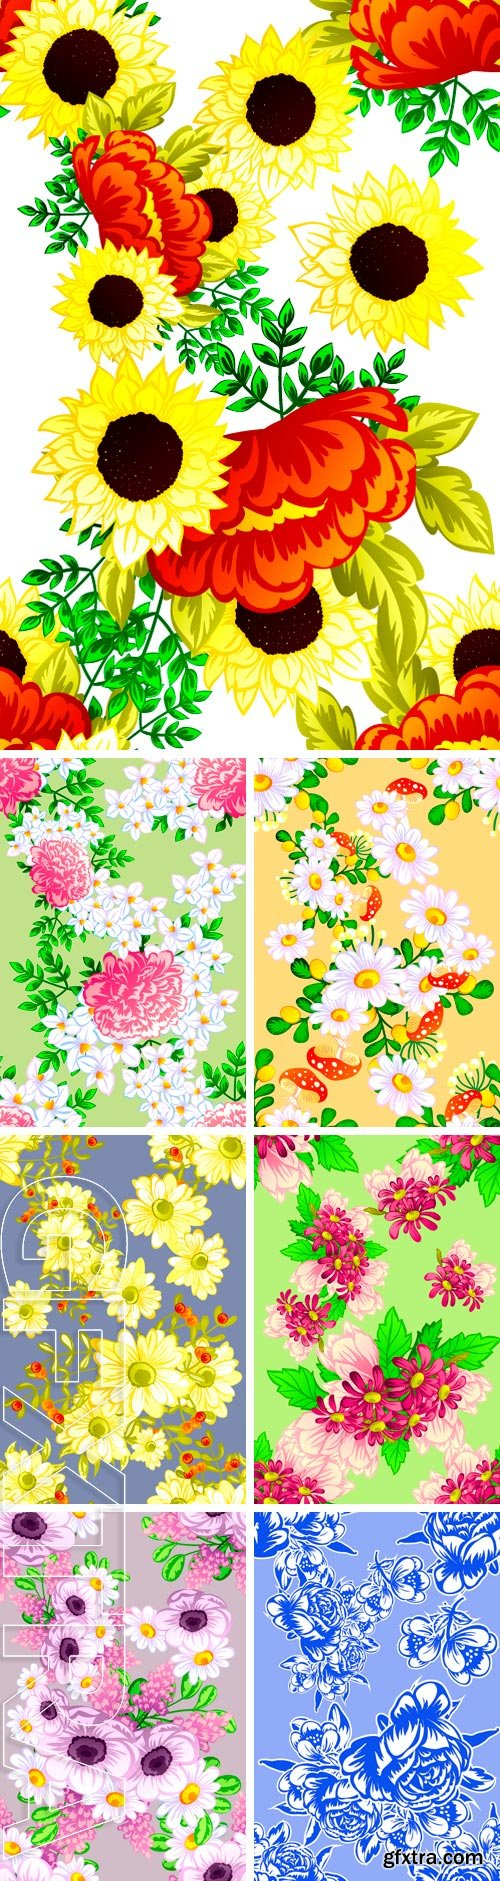 Stock Vectors - Abstract elegance seamless pattern with floral background EPS | JPG Previews | 39 MB RAR